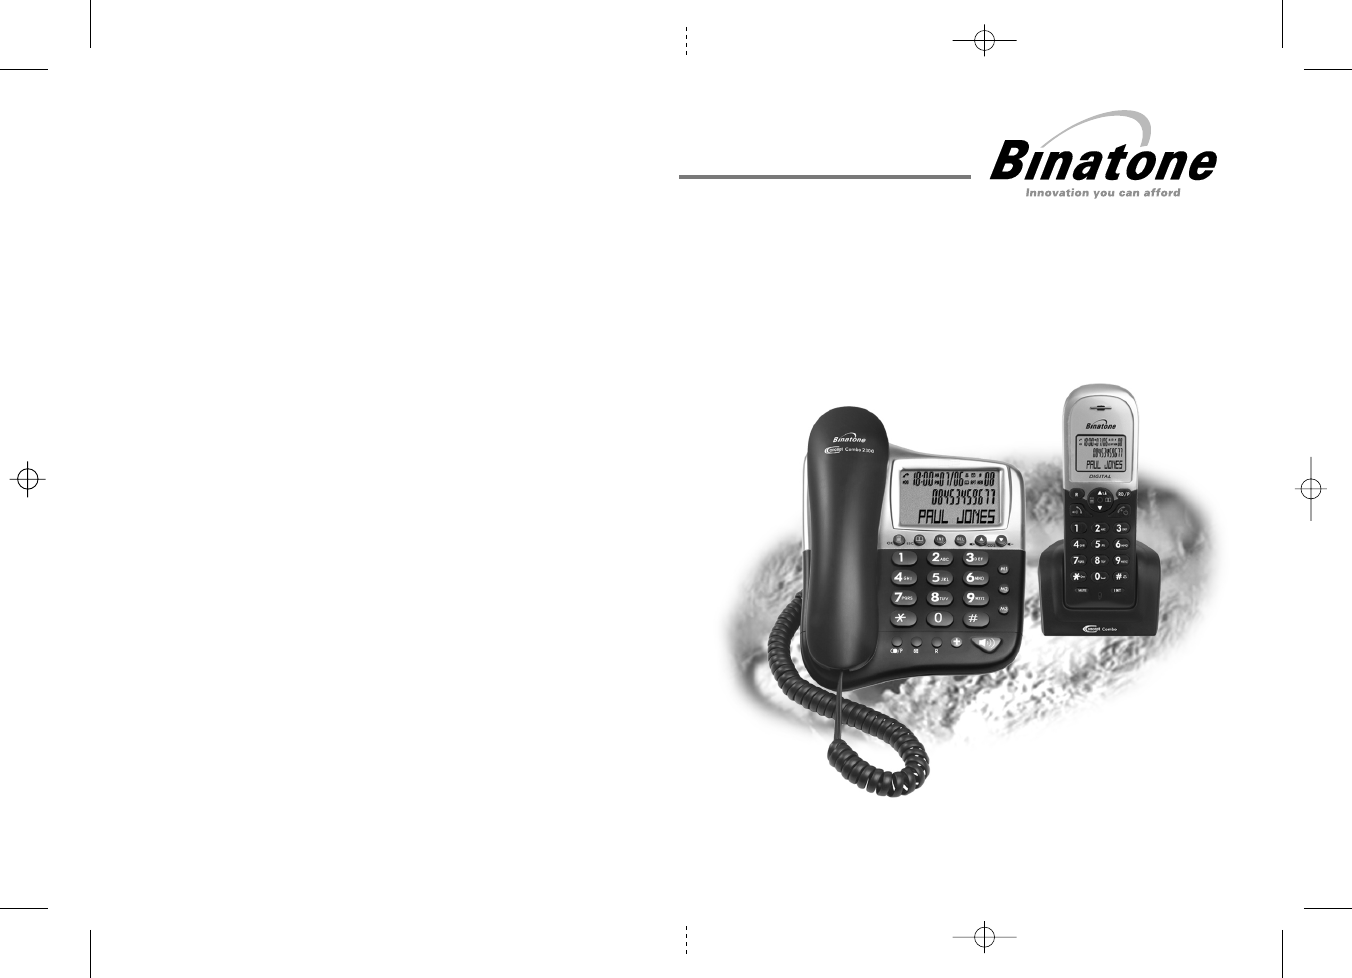 Binatone Cordless Telephone 2300 User Guide